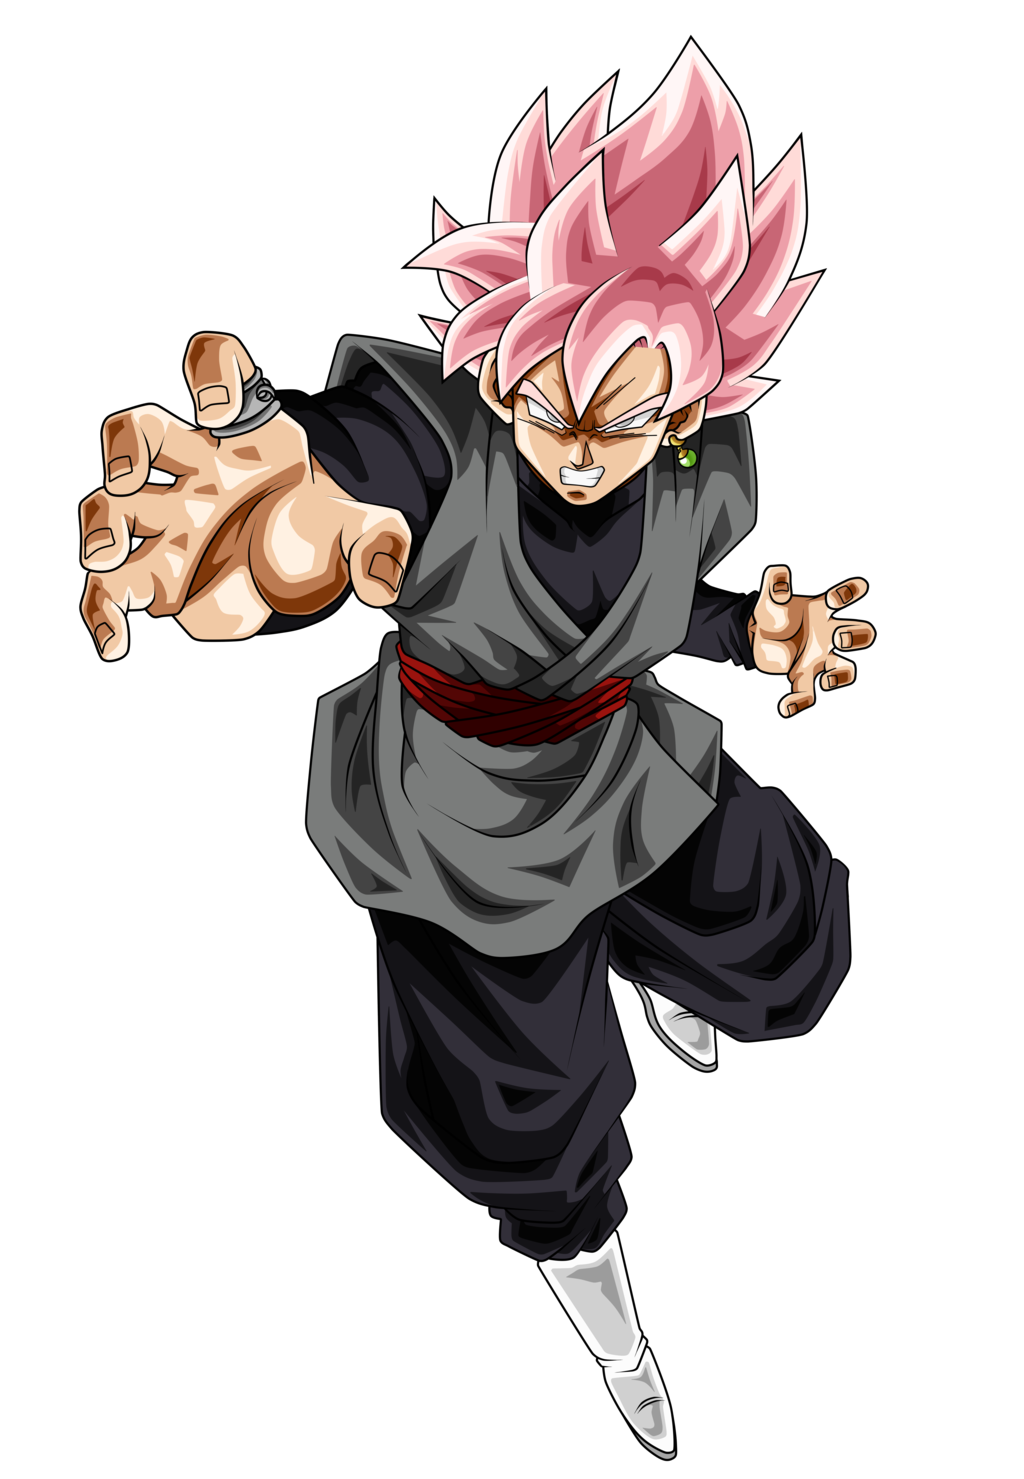 Goku black rose png. Canon dragon ball super